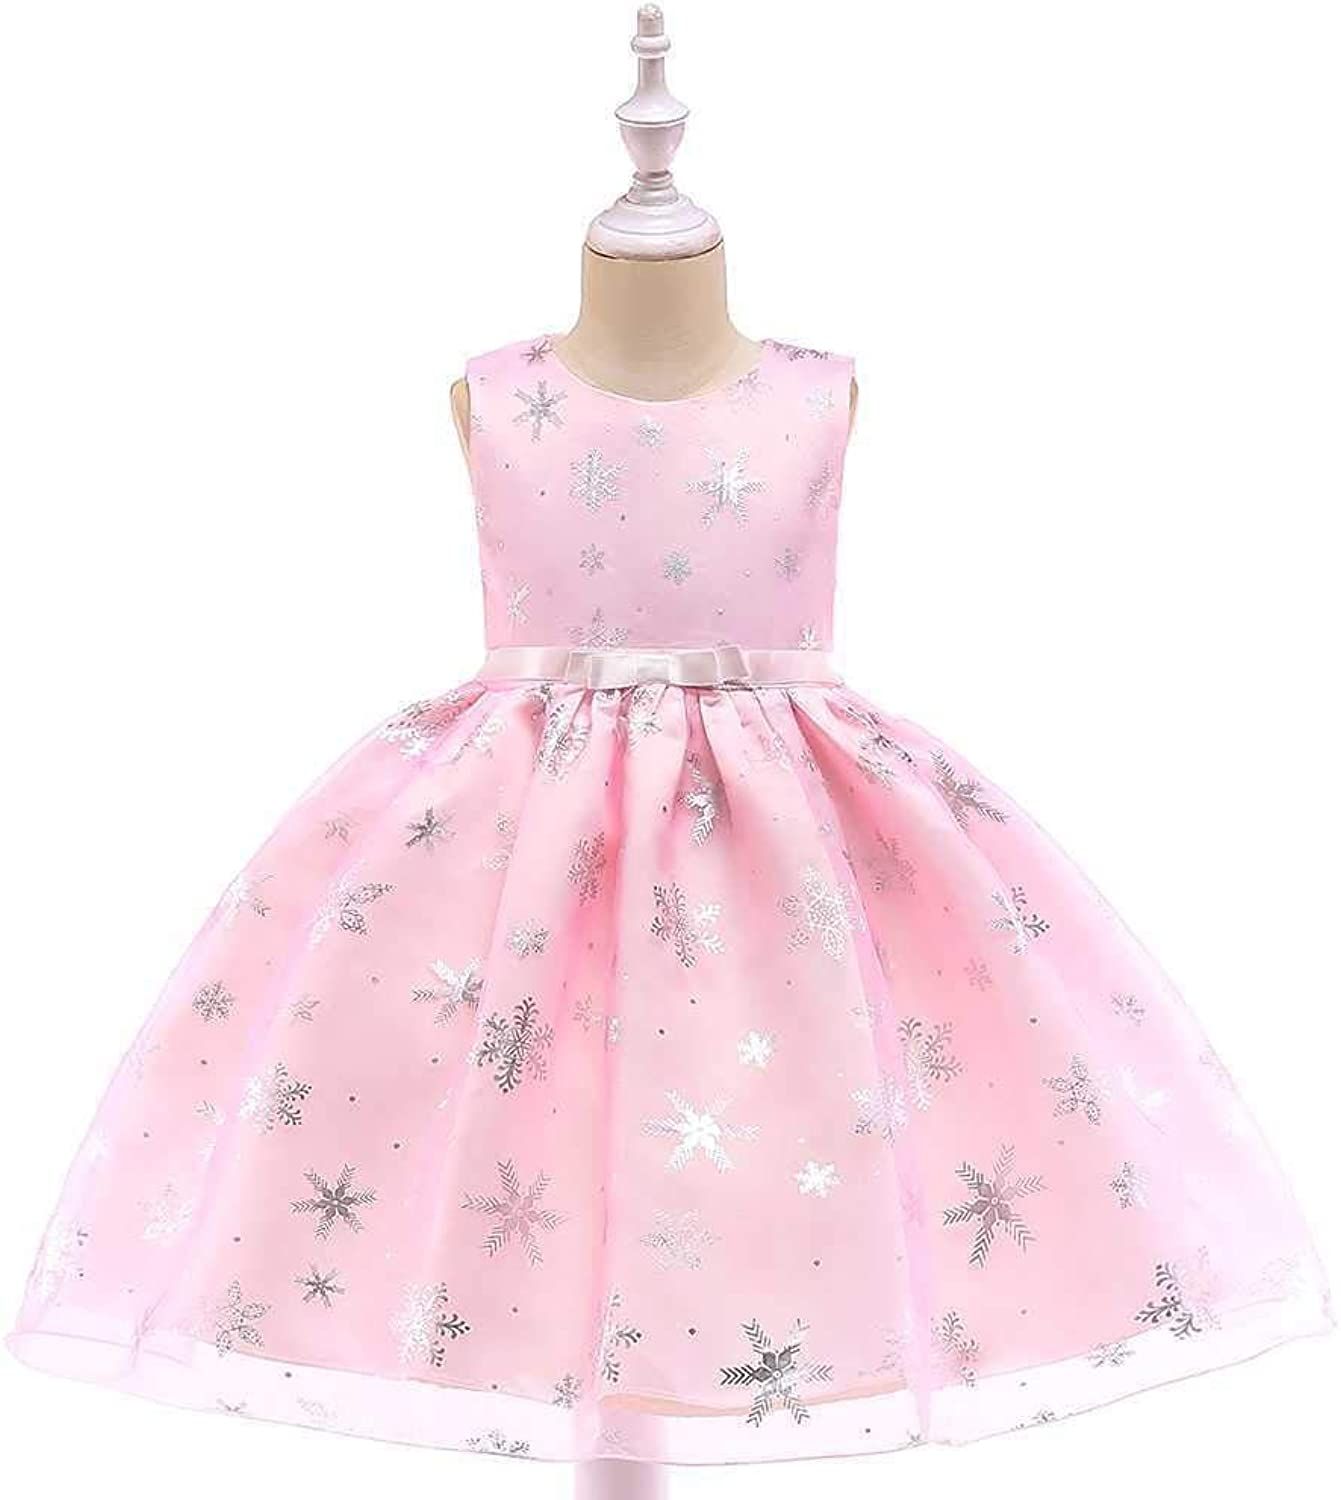 Girls Bowknot Princess Dress Lace Mesh Flower Girl Wedding Costume Piano Performance Clothing Cloth (color   Pink, Size   7-8Years)